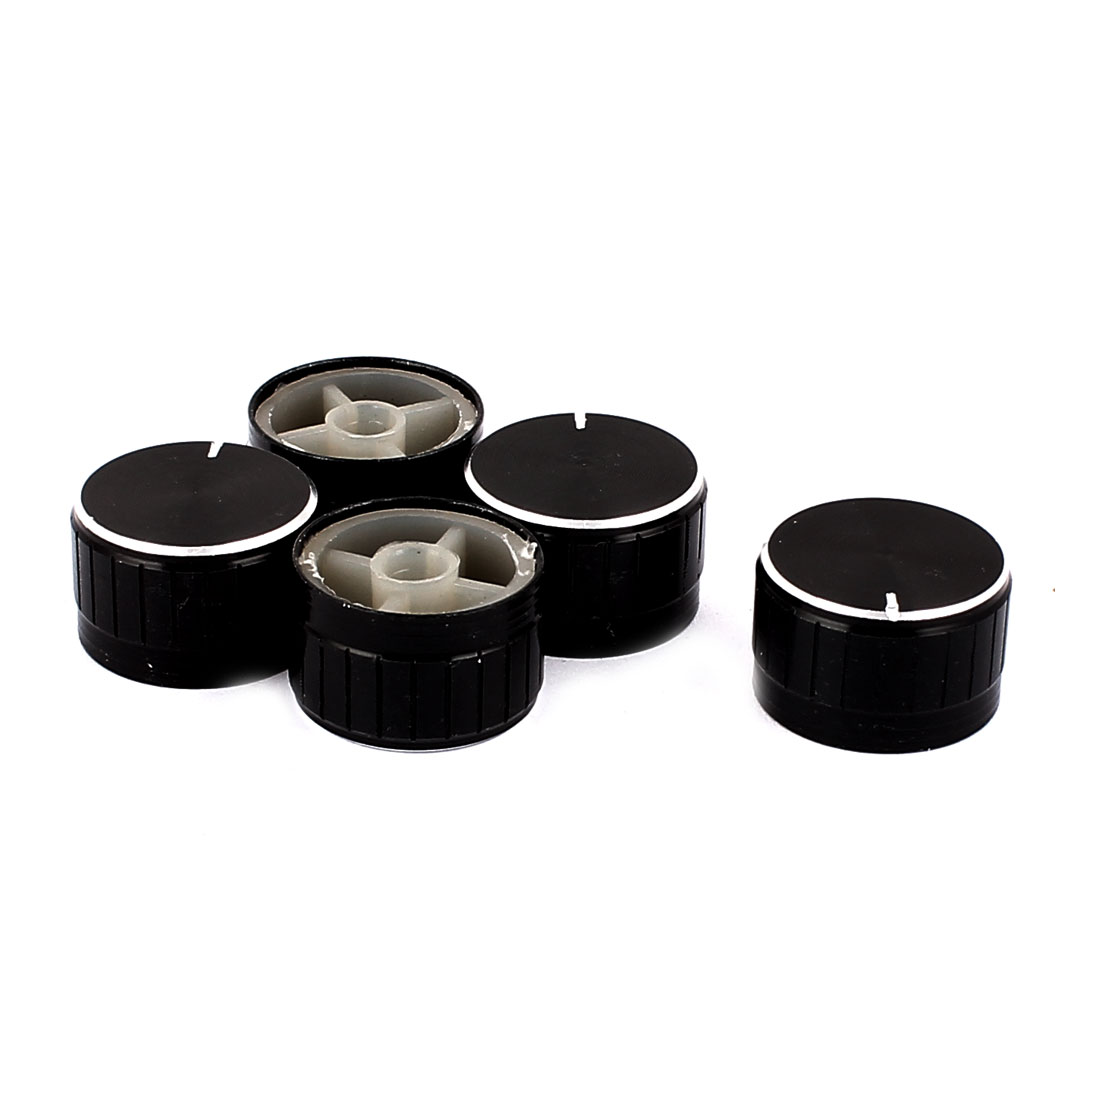 5 Pcs 26mm x 6mm Potentiometer Control Switch Volume Cap Aluminium Alloy Knurled Button Black